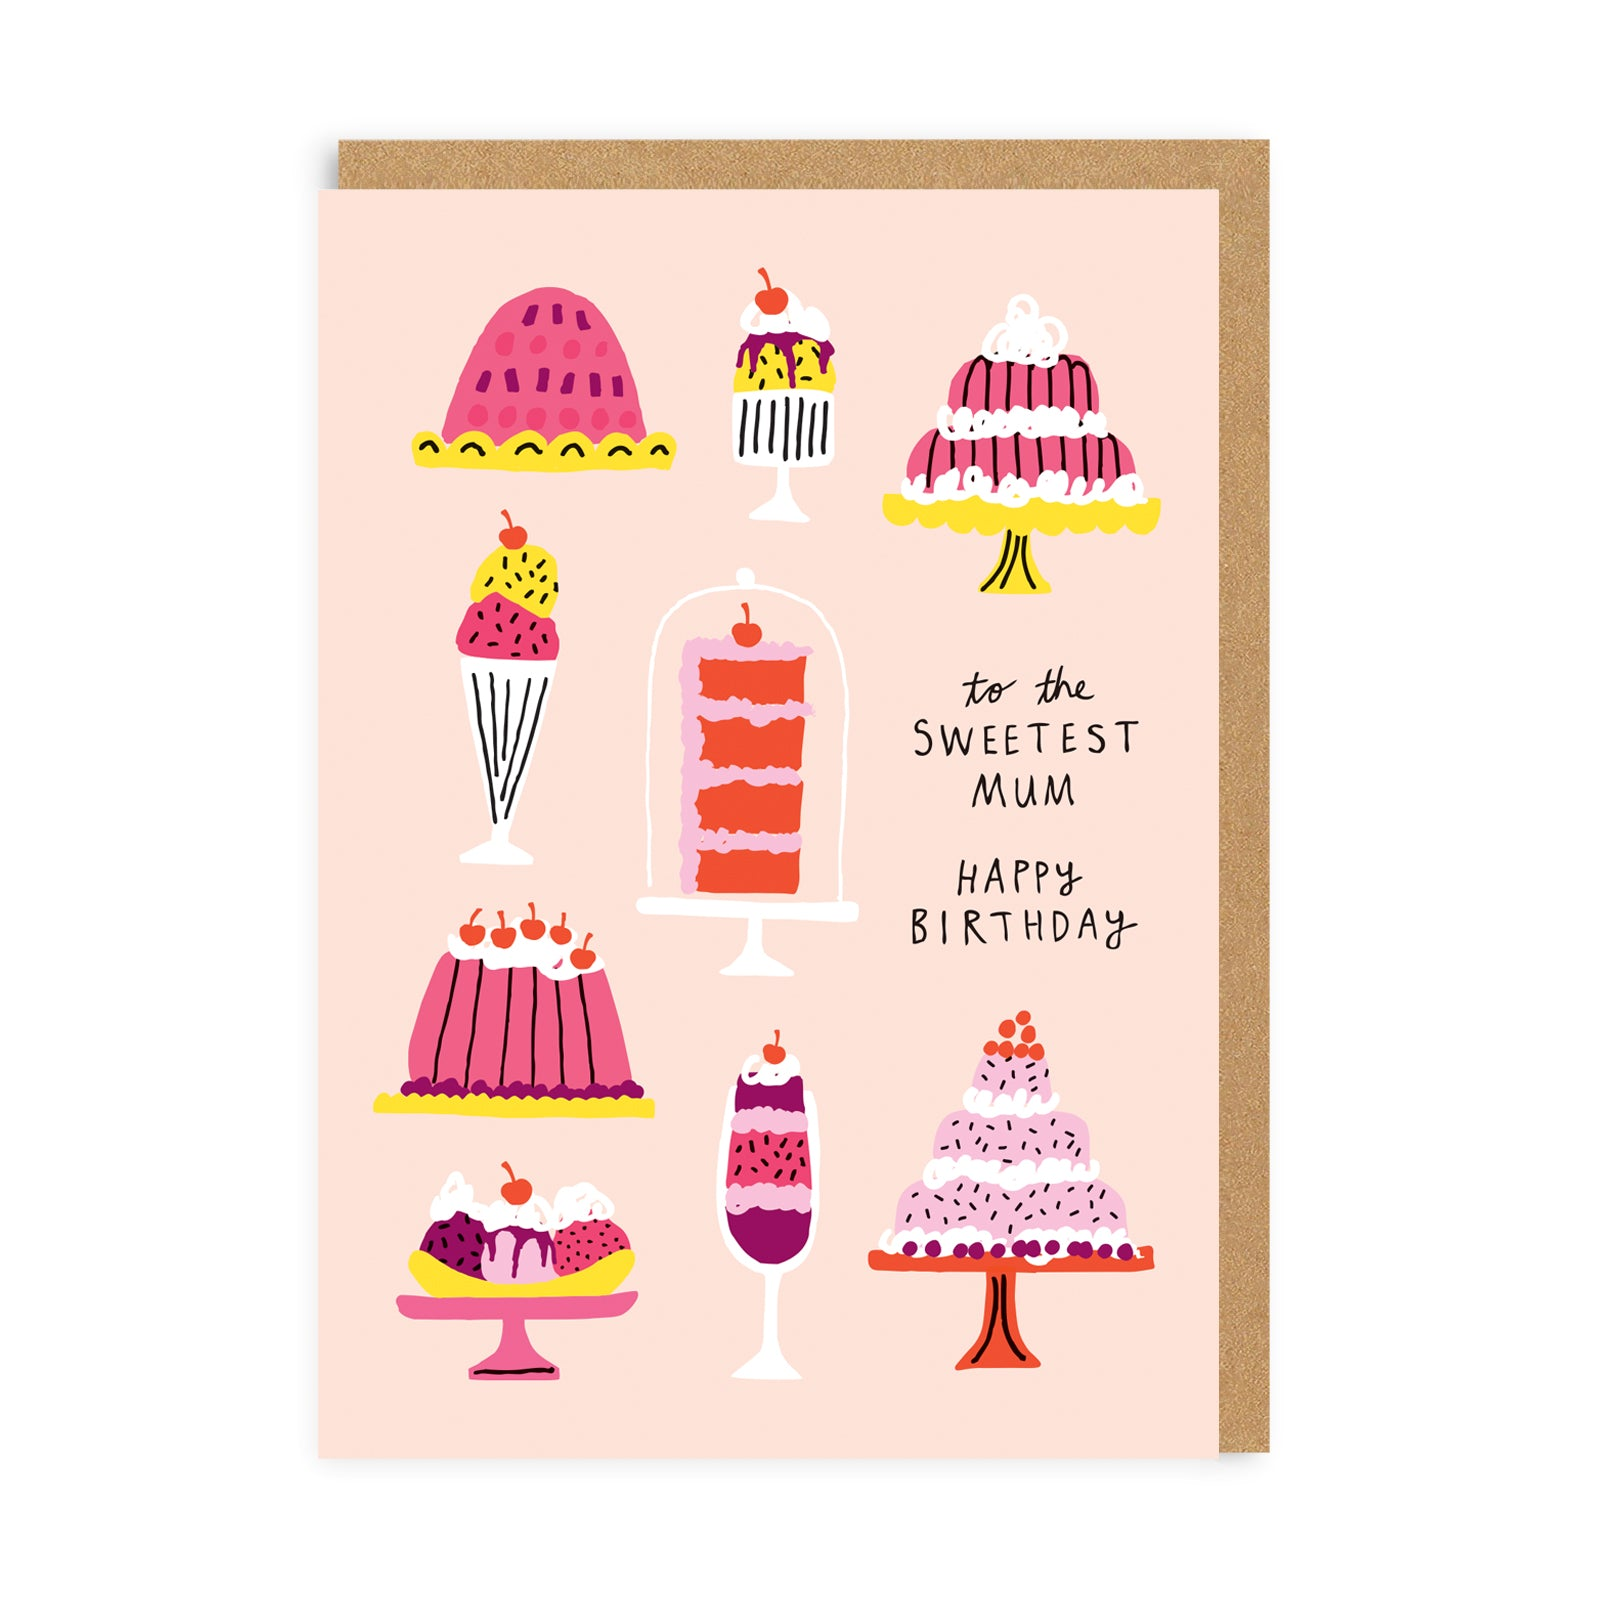 Sweetest Mum Greeting Card